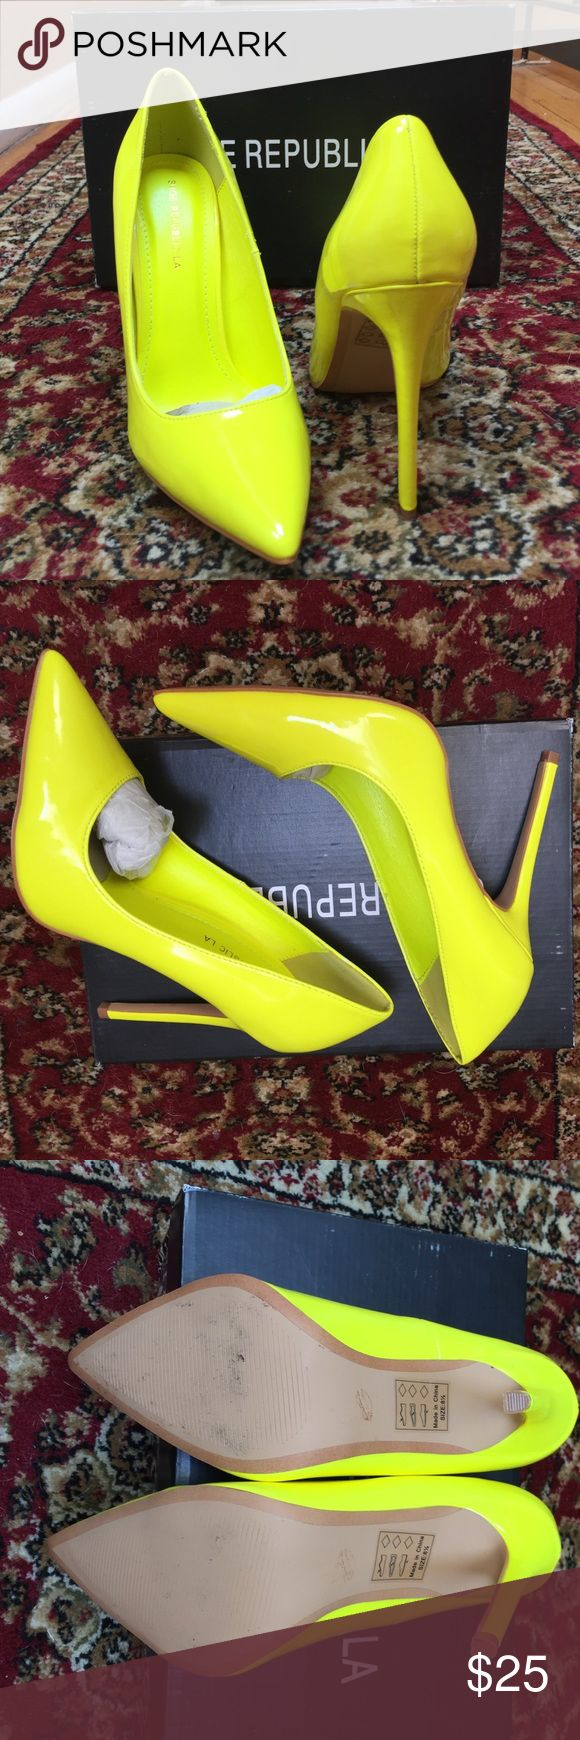 Neon yellow Shoe Republic Heels  Never worn, only tried on with an outfit, neon yellow pair of pumps! Will certainty pop out any outfit. Super cute! Shoe Republic LA Shoes Heels